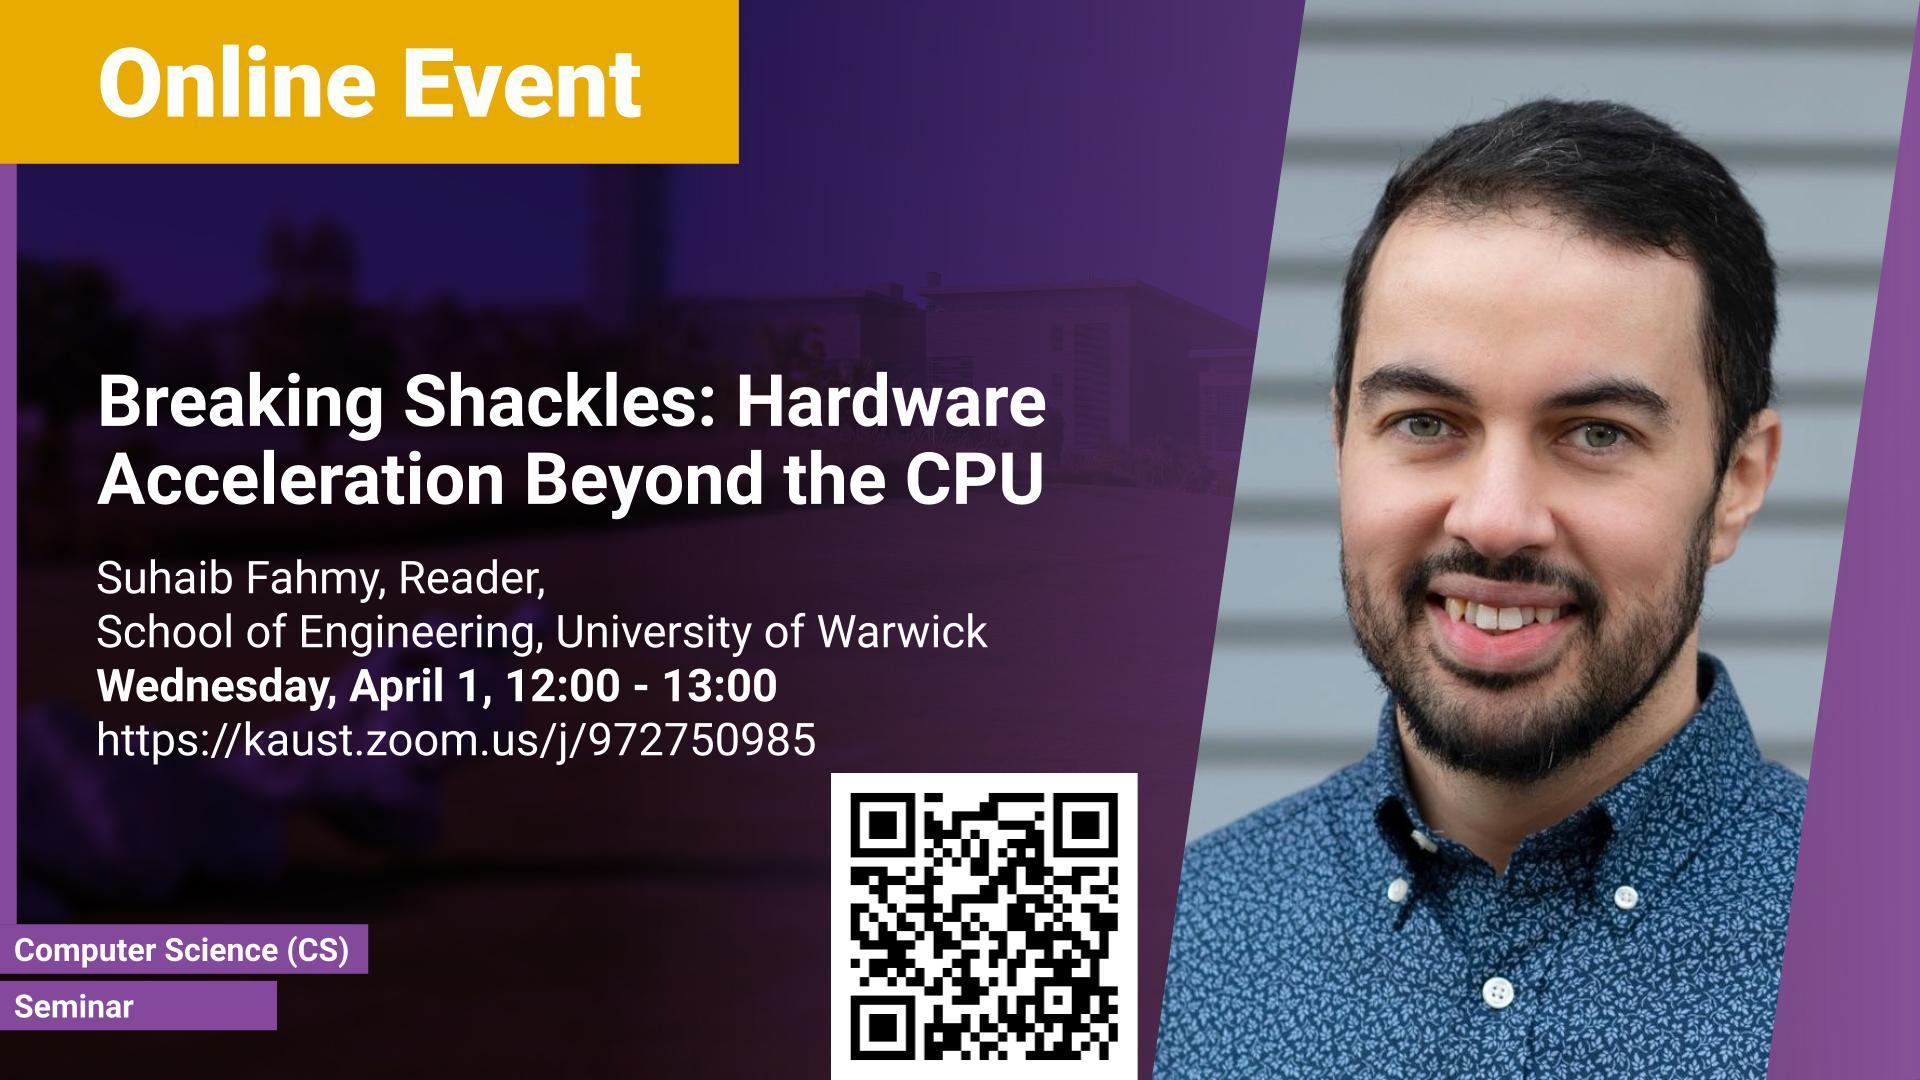 KAUST CEMSE CS Seminar Suhaib Fahmy Breaking Shackles Hardware Acceleration Beyond the CPU